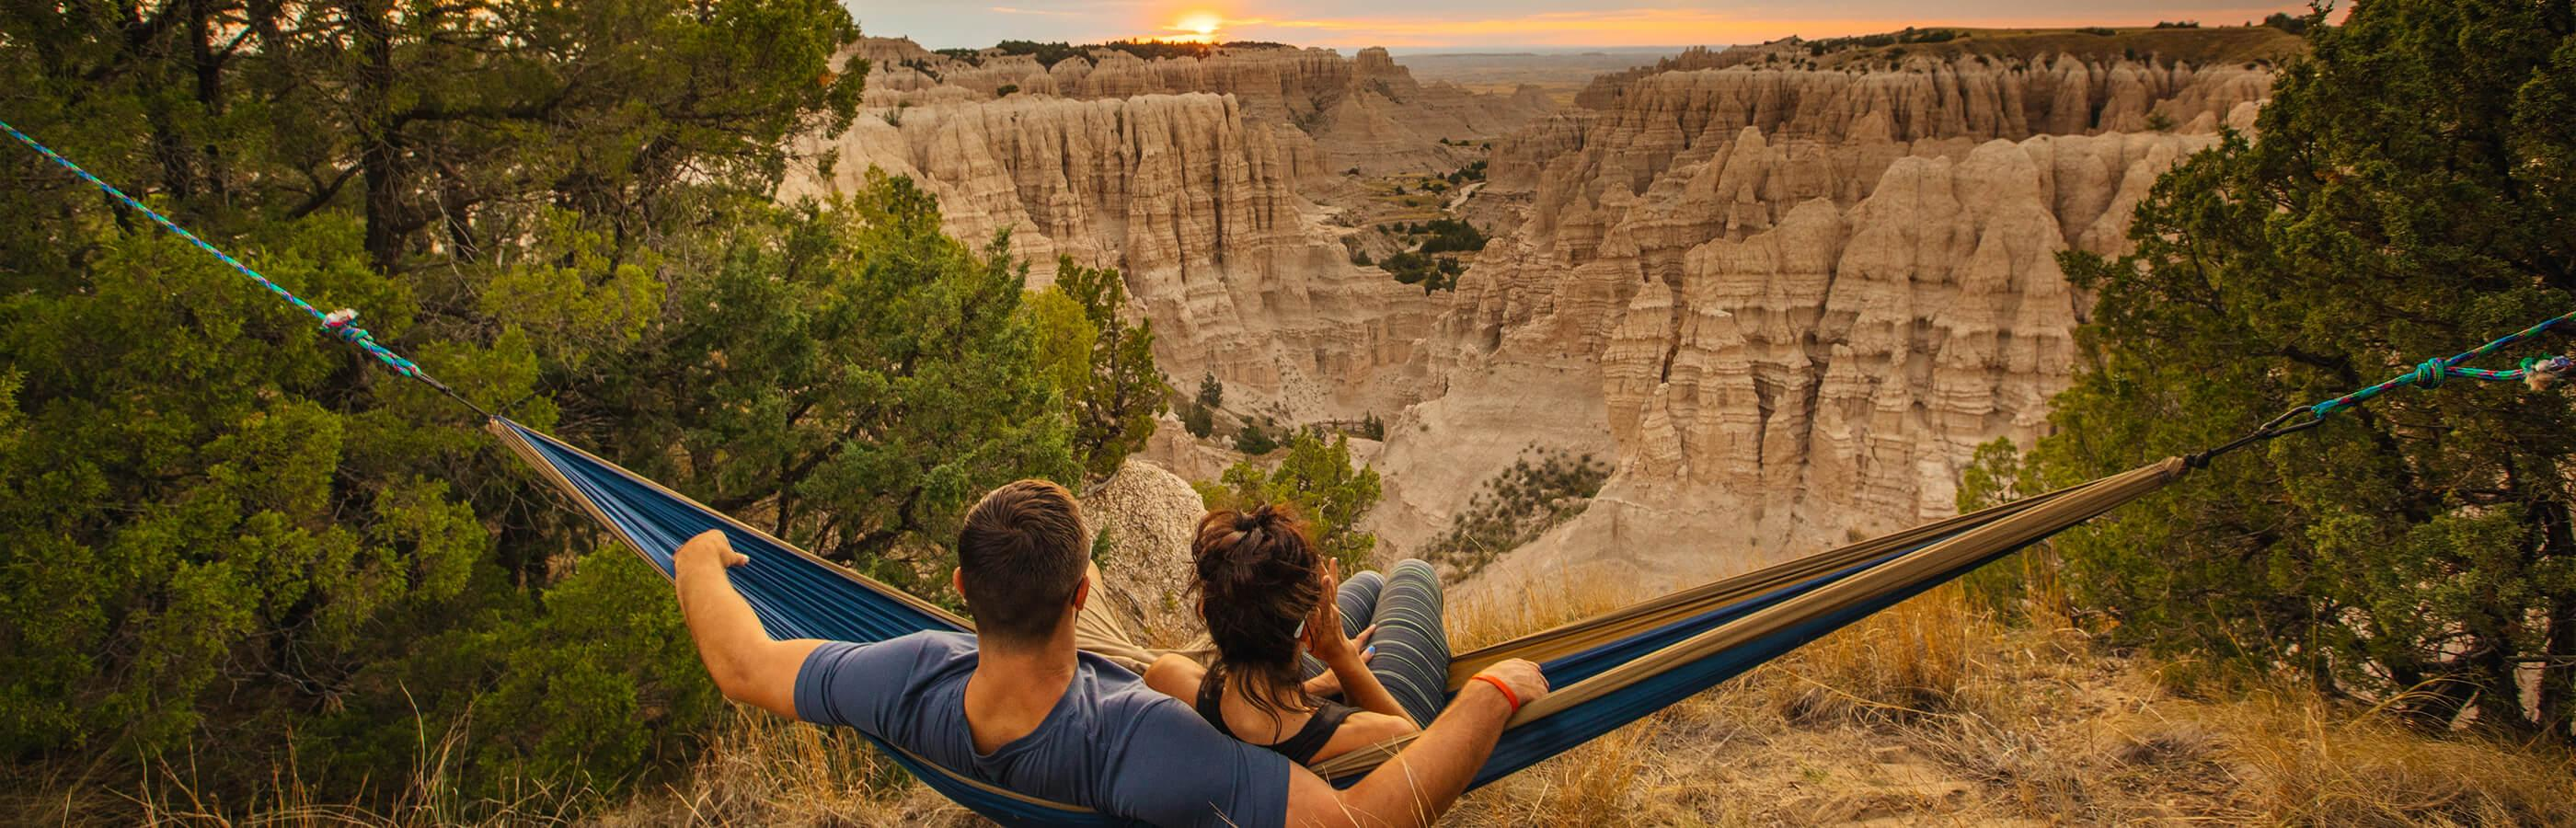 Man and Woman in a Hammock at Badlands National Park